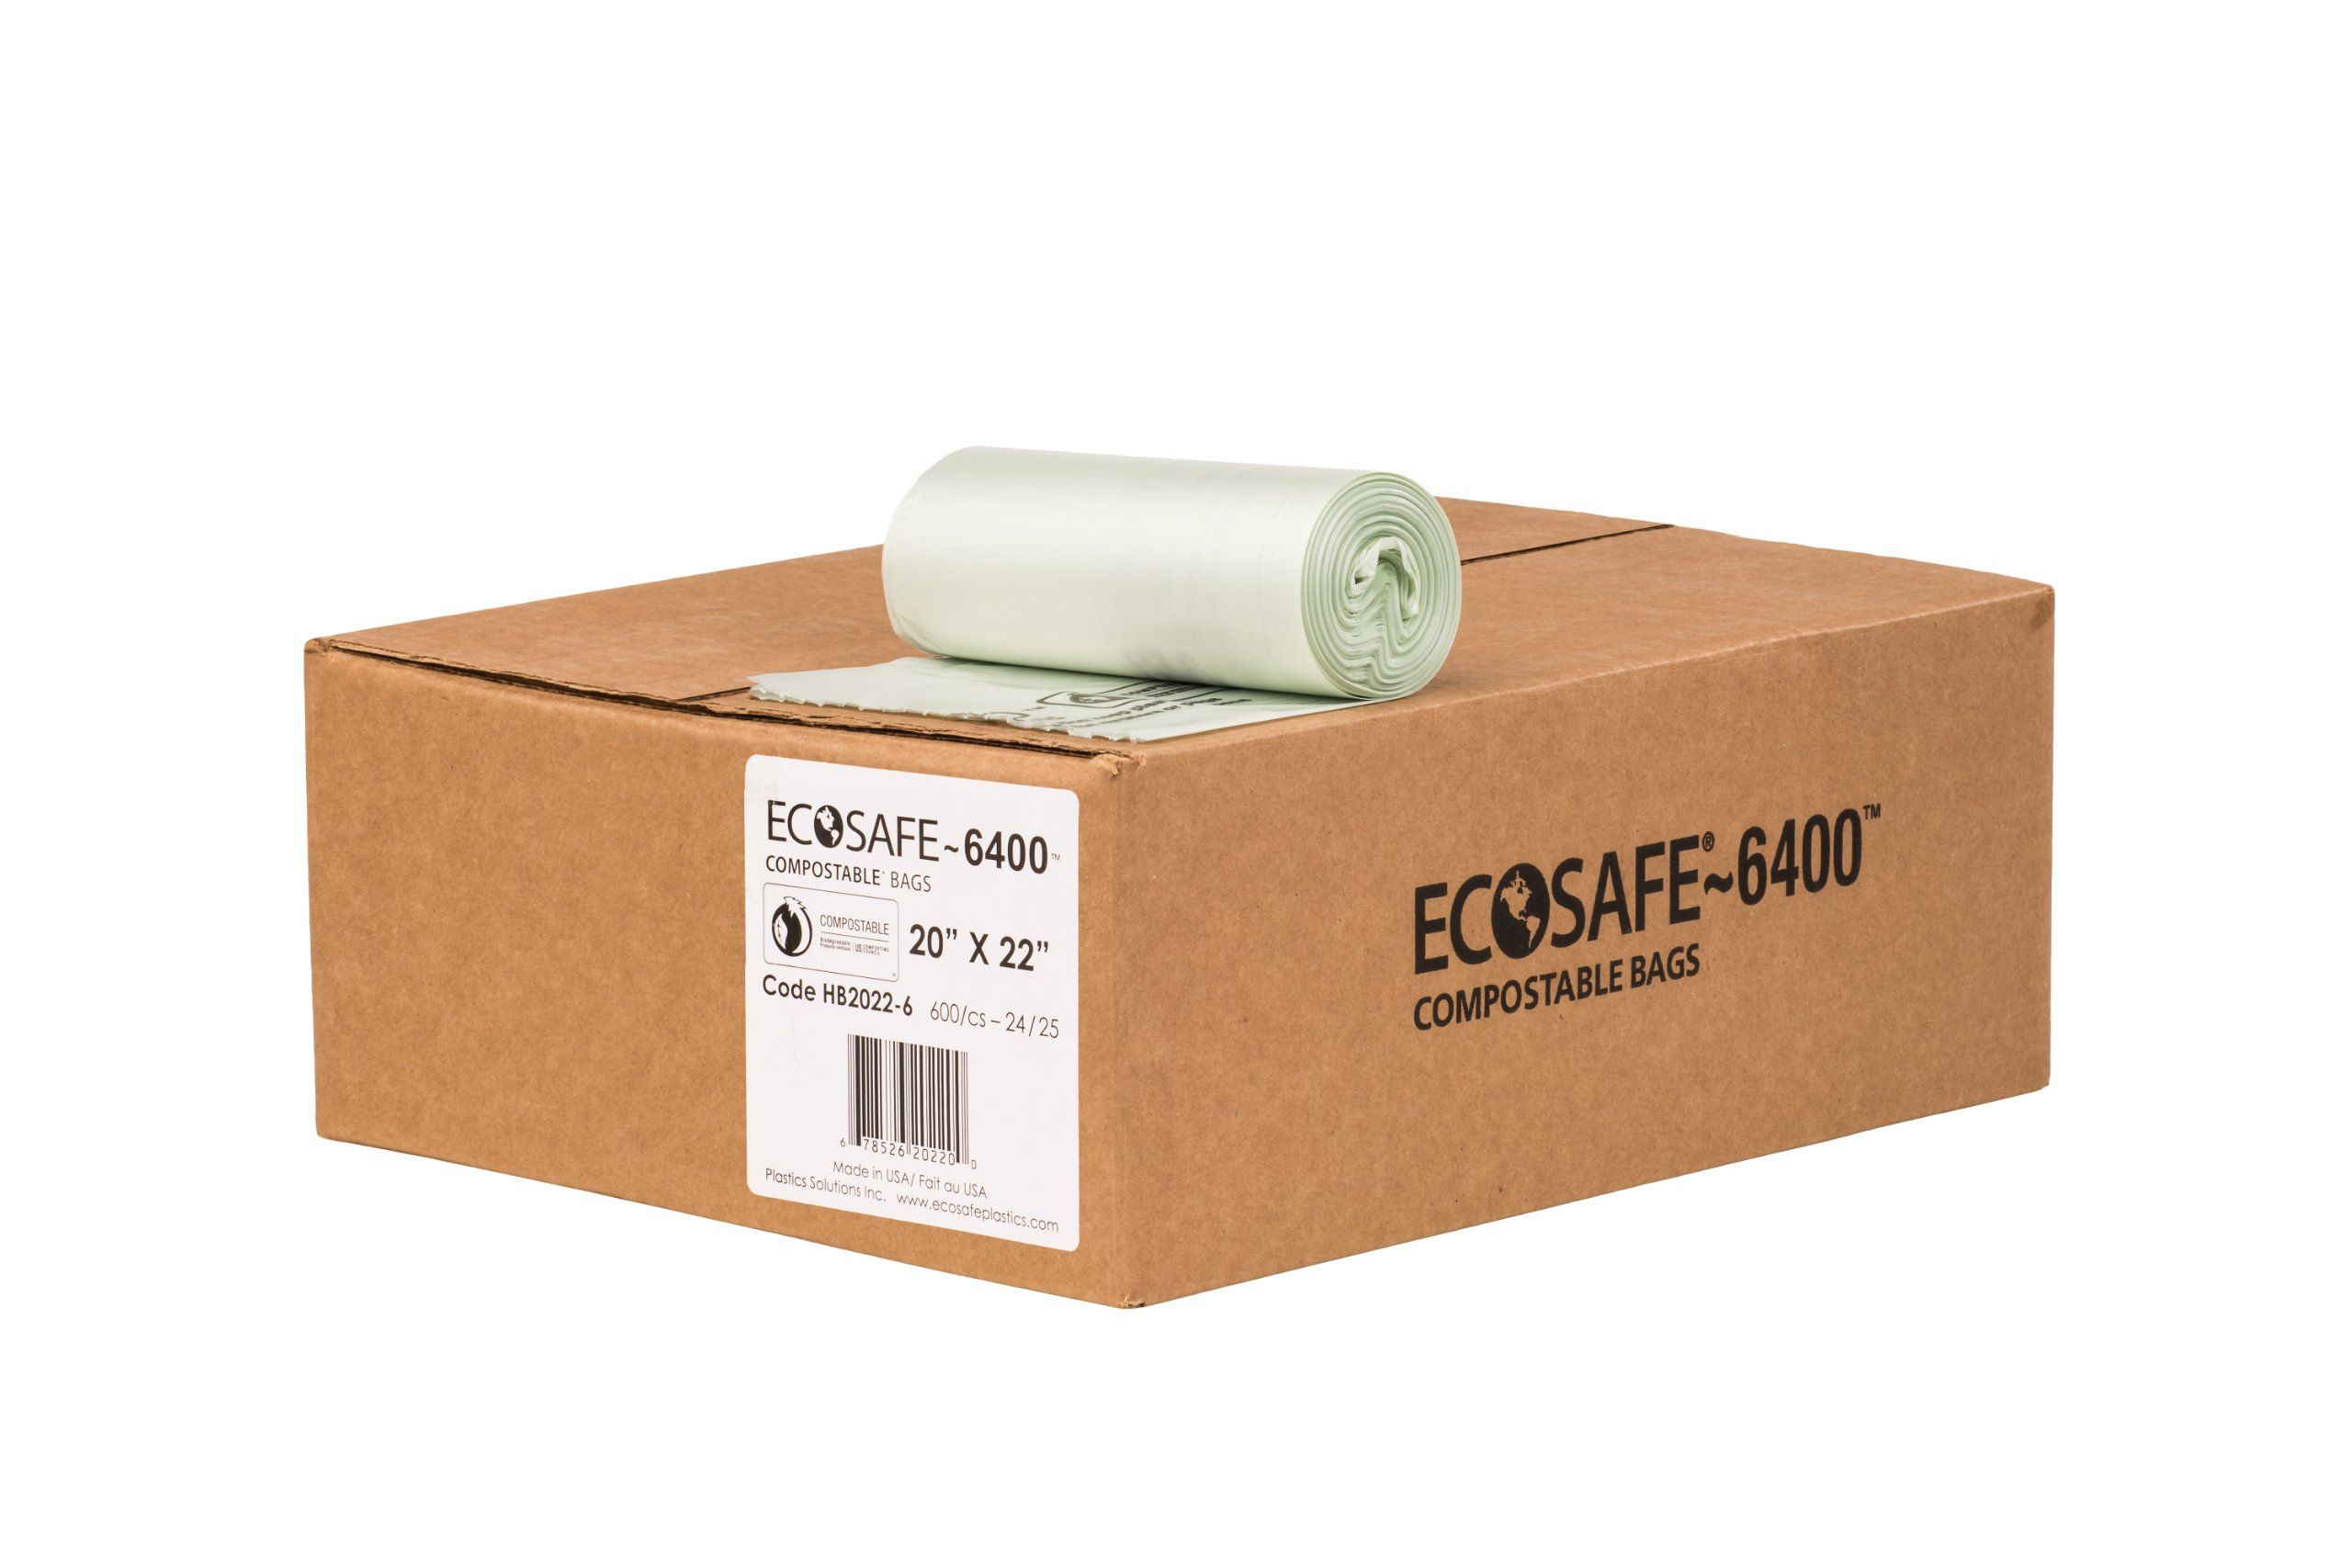 EcoSafe-6400 HB2022-6 Compostable Bag, Certified Compostable, 7-Gallon, Green (Pack of 600) by EcoSafe